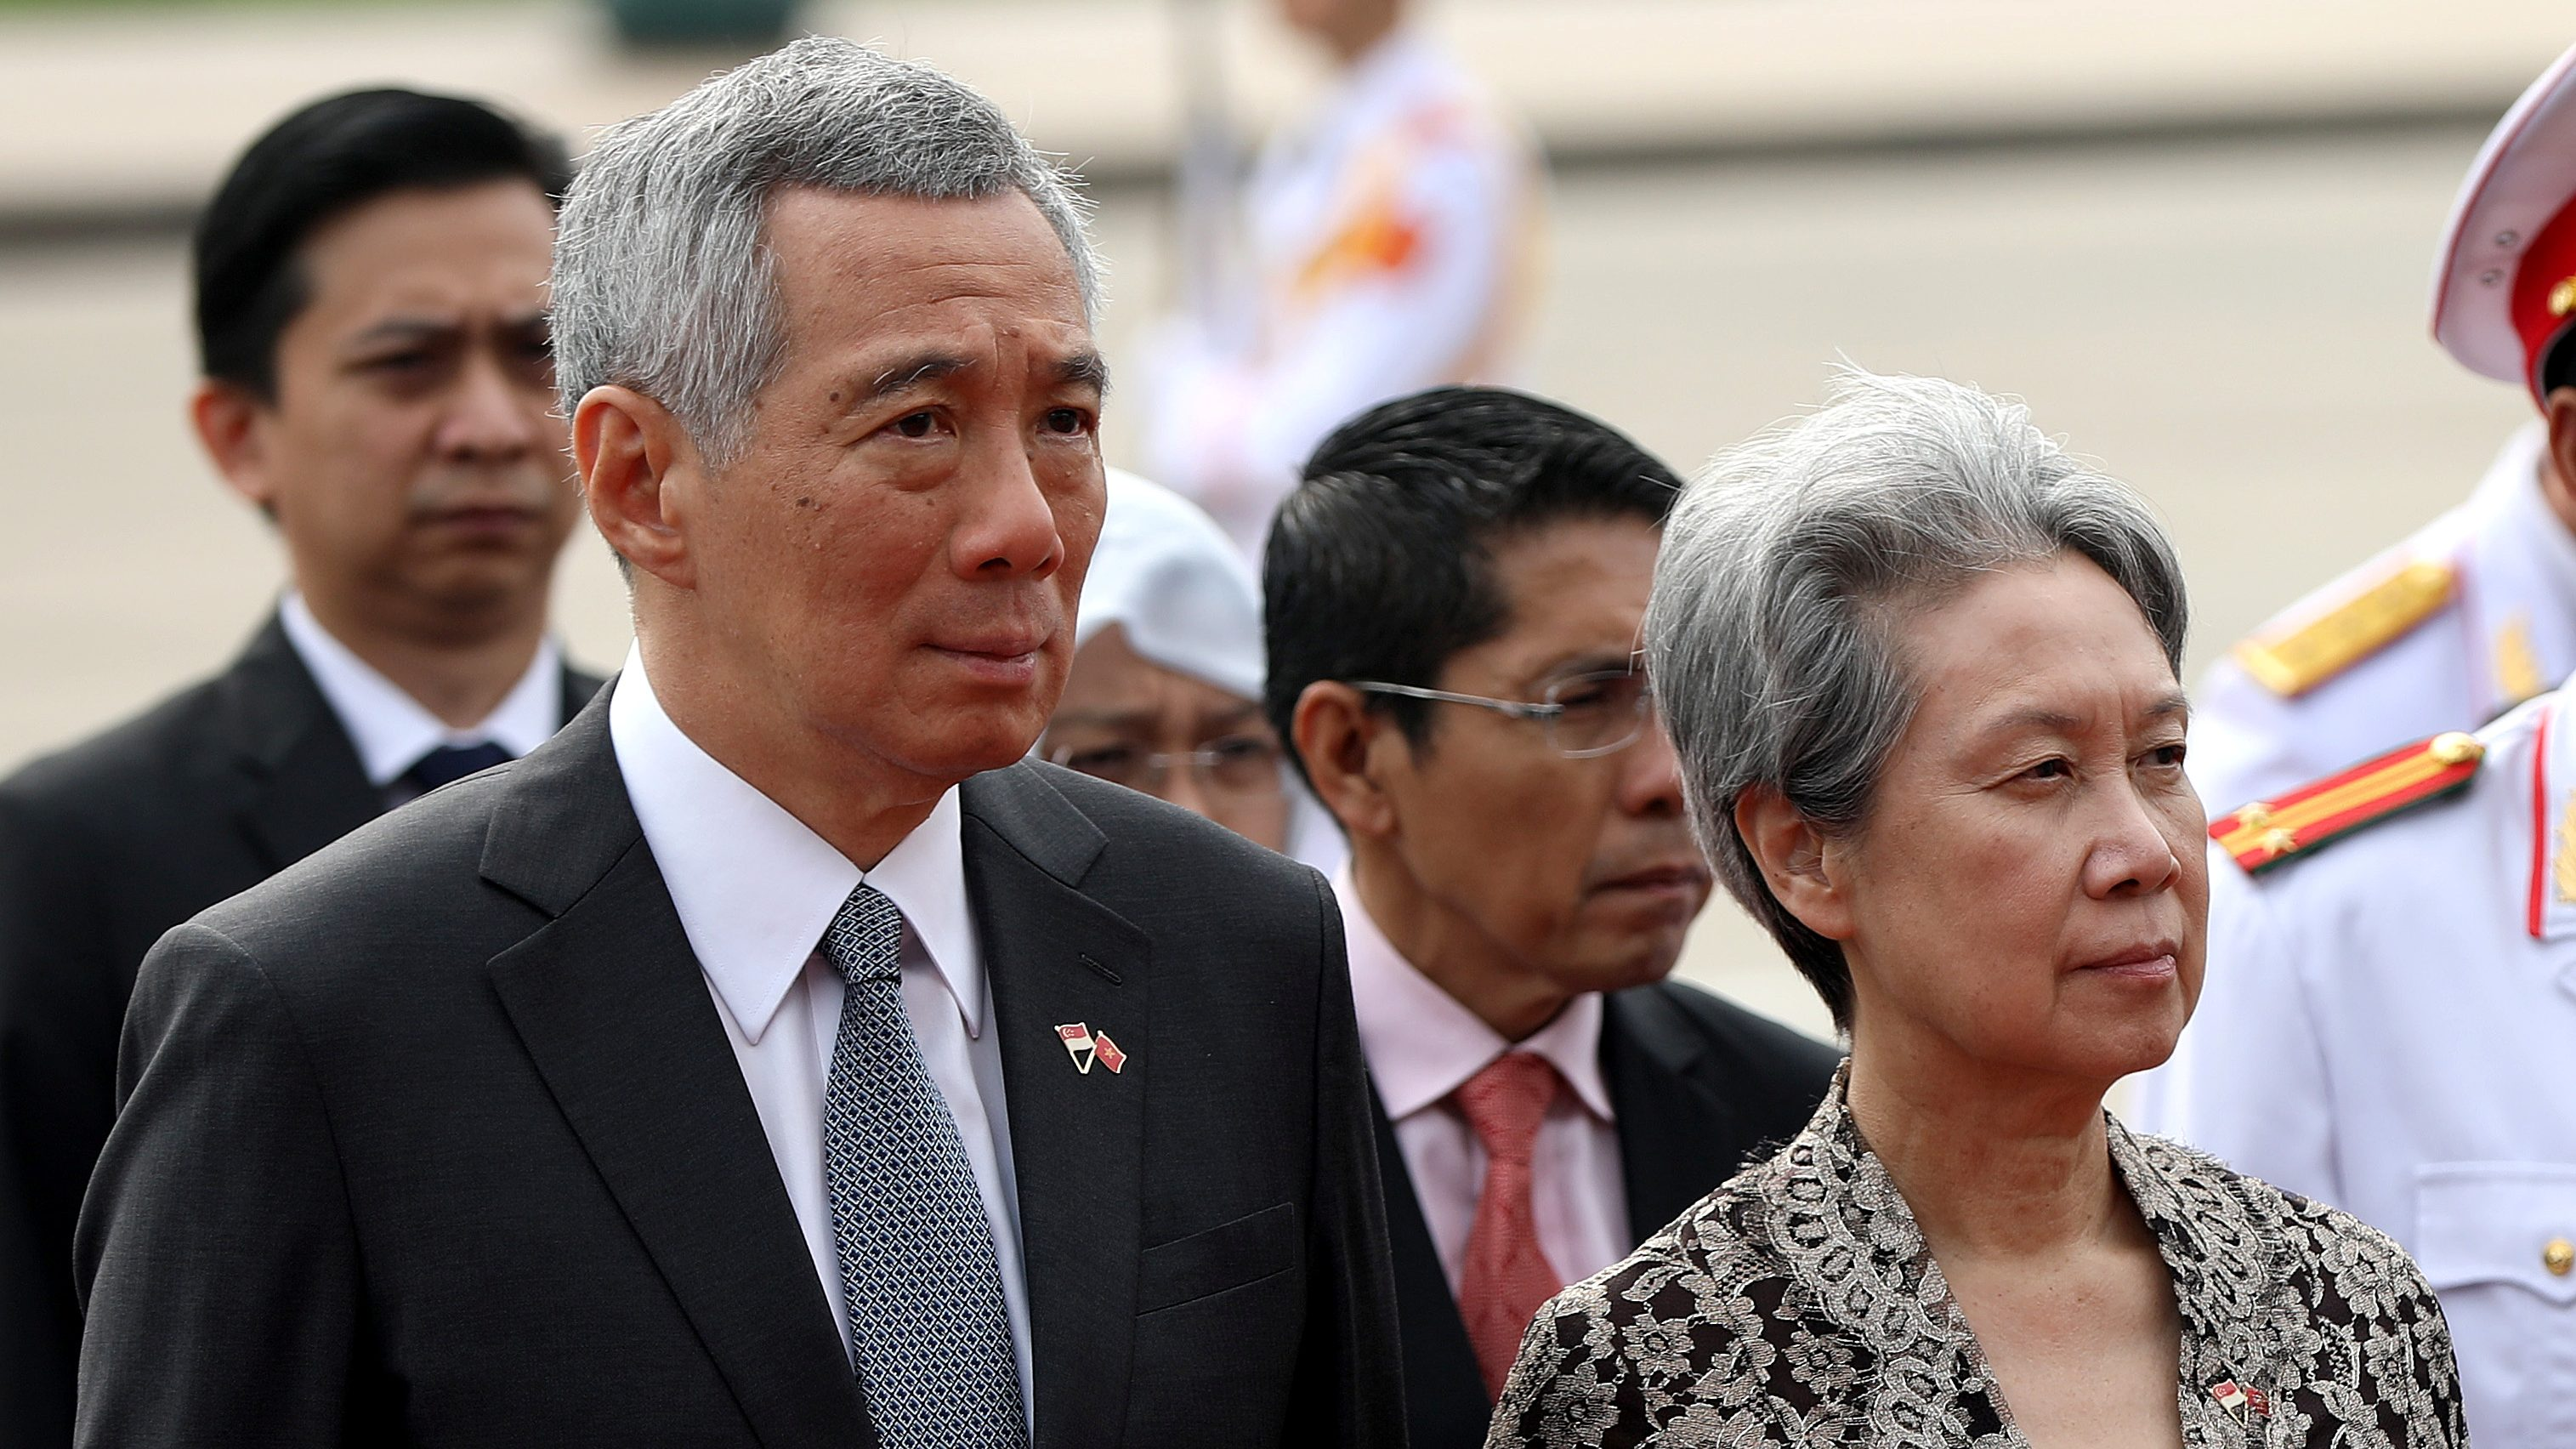 Singapore's Prime Minister Lee Hsien Loong and his wife Ho Ching attend a wreath laying at the Mausoleum of Ho Chi Minh in Hanoi, Vietnam 23 March 2017.